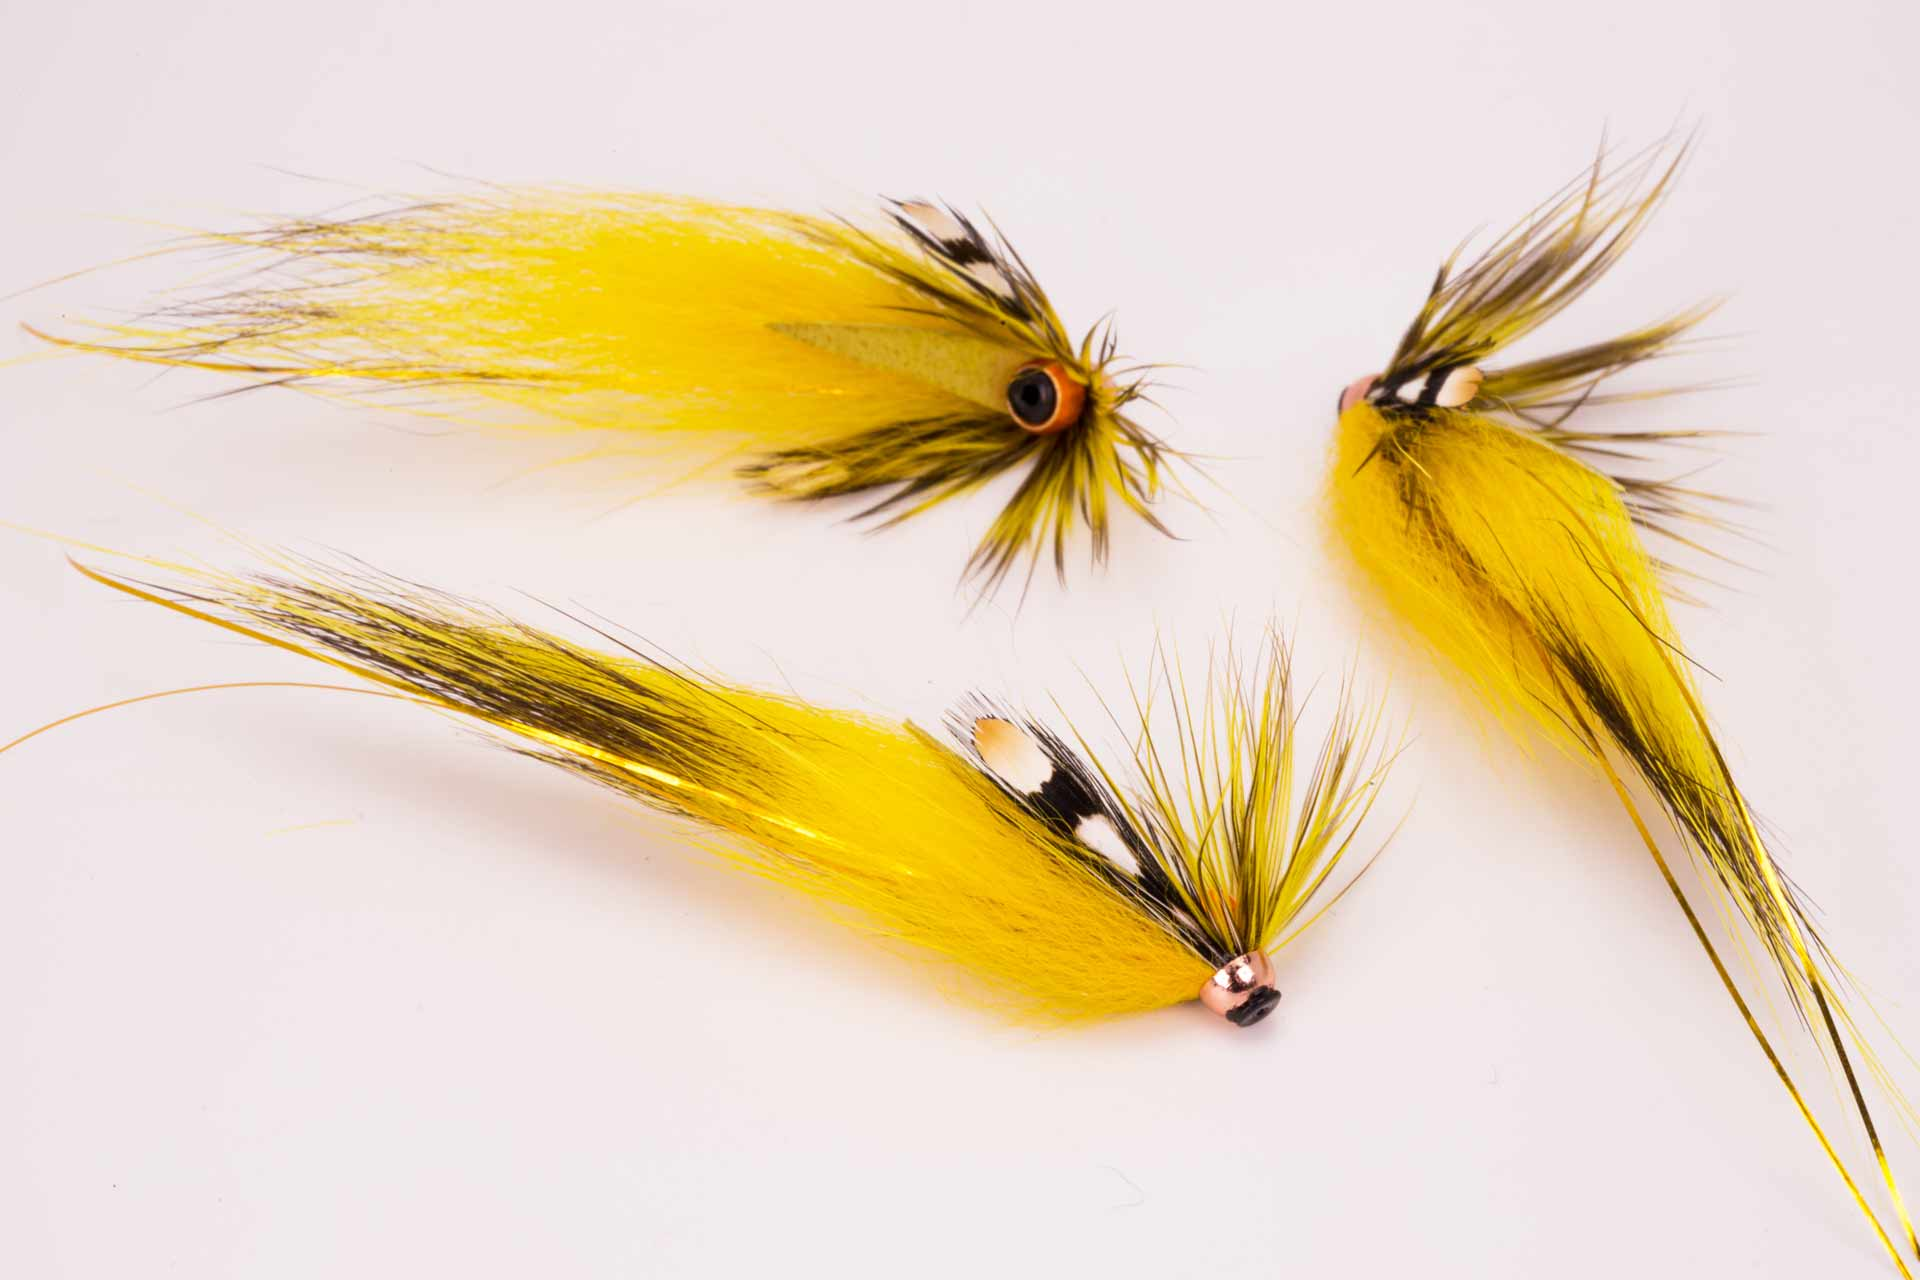 Tying a Banana Zonker tube fly